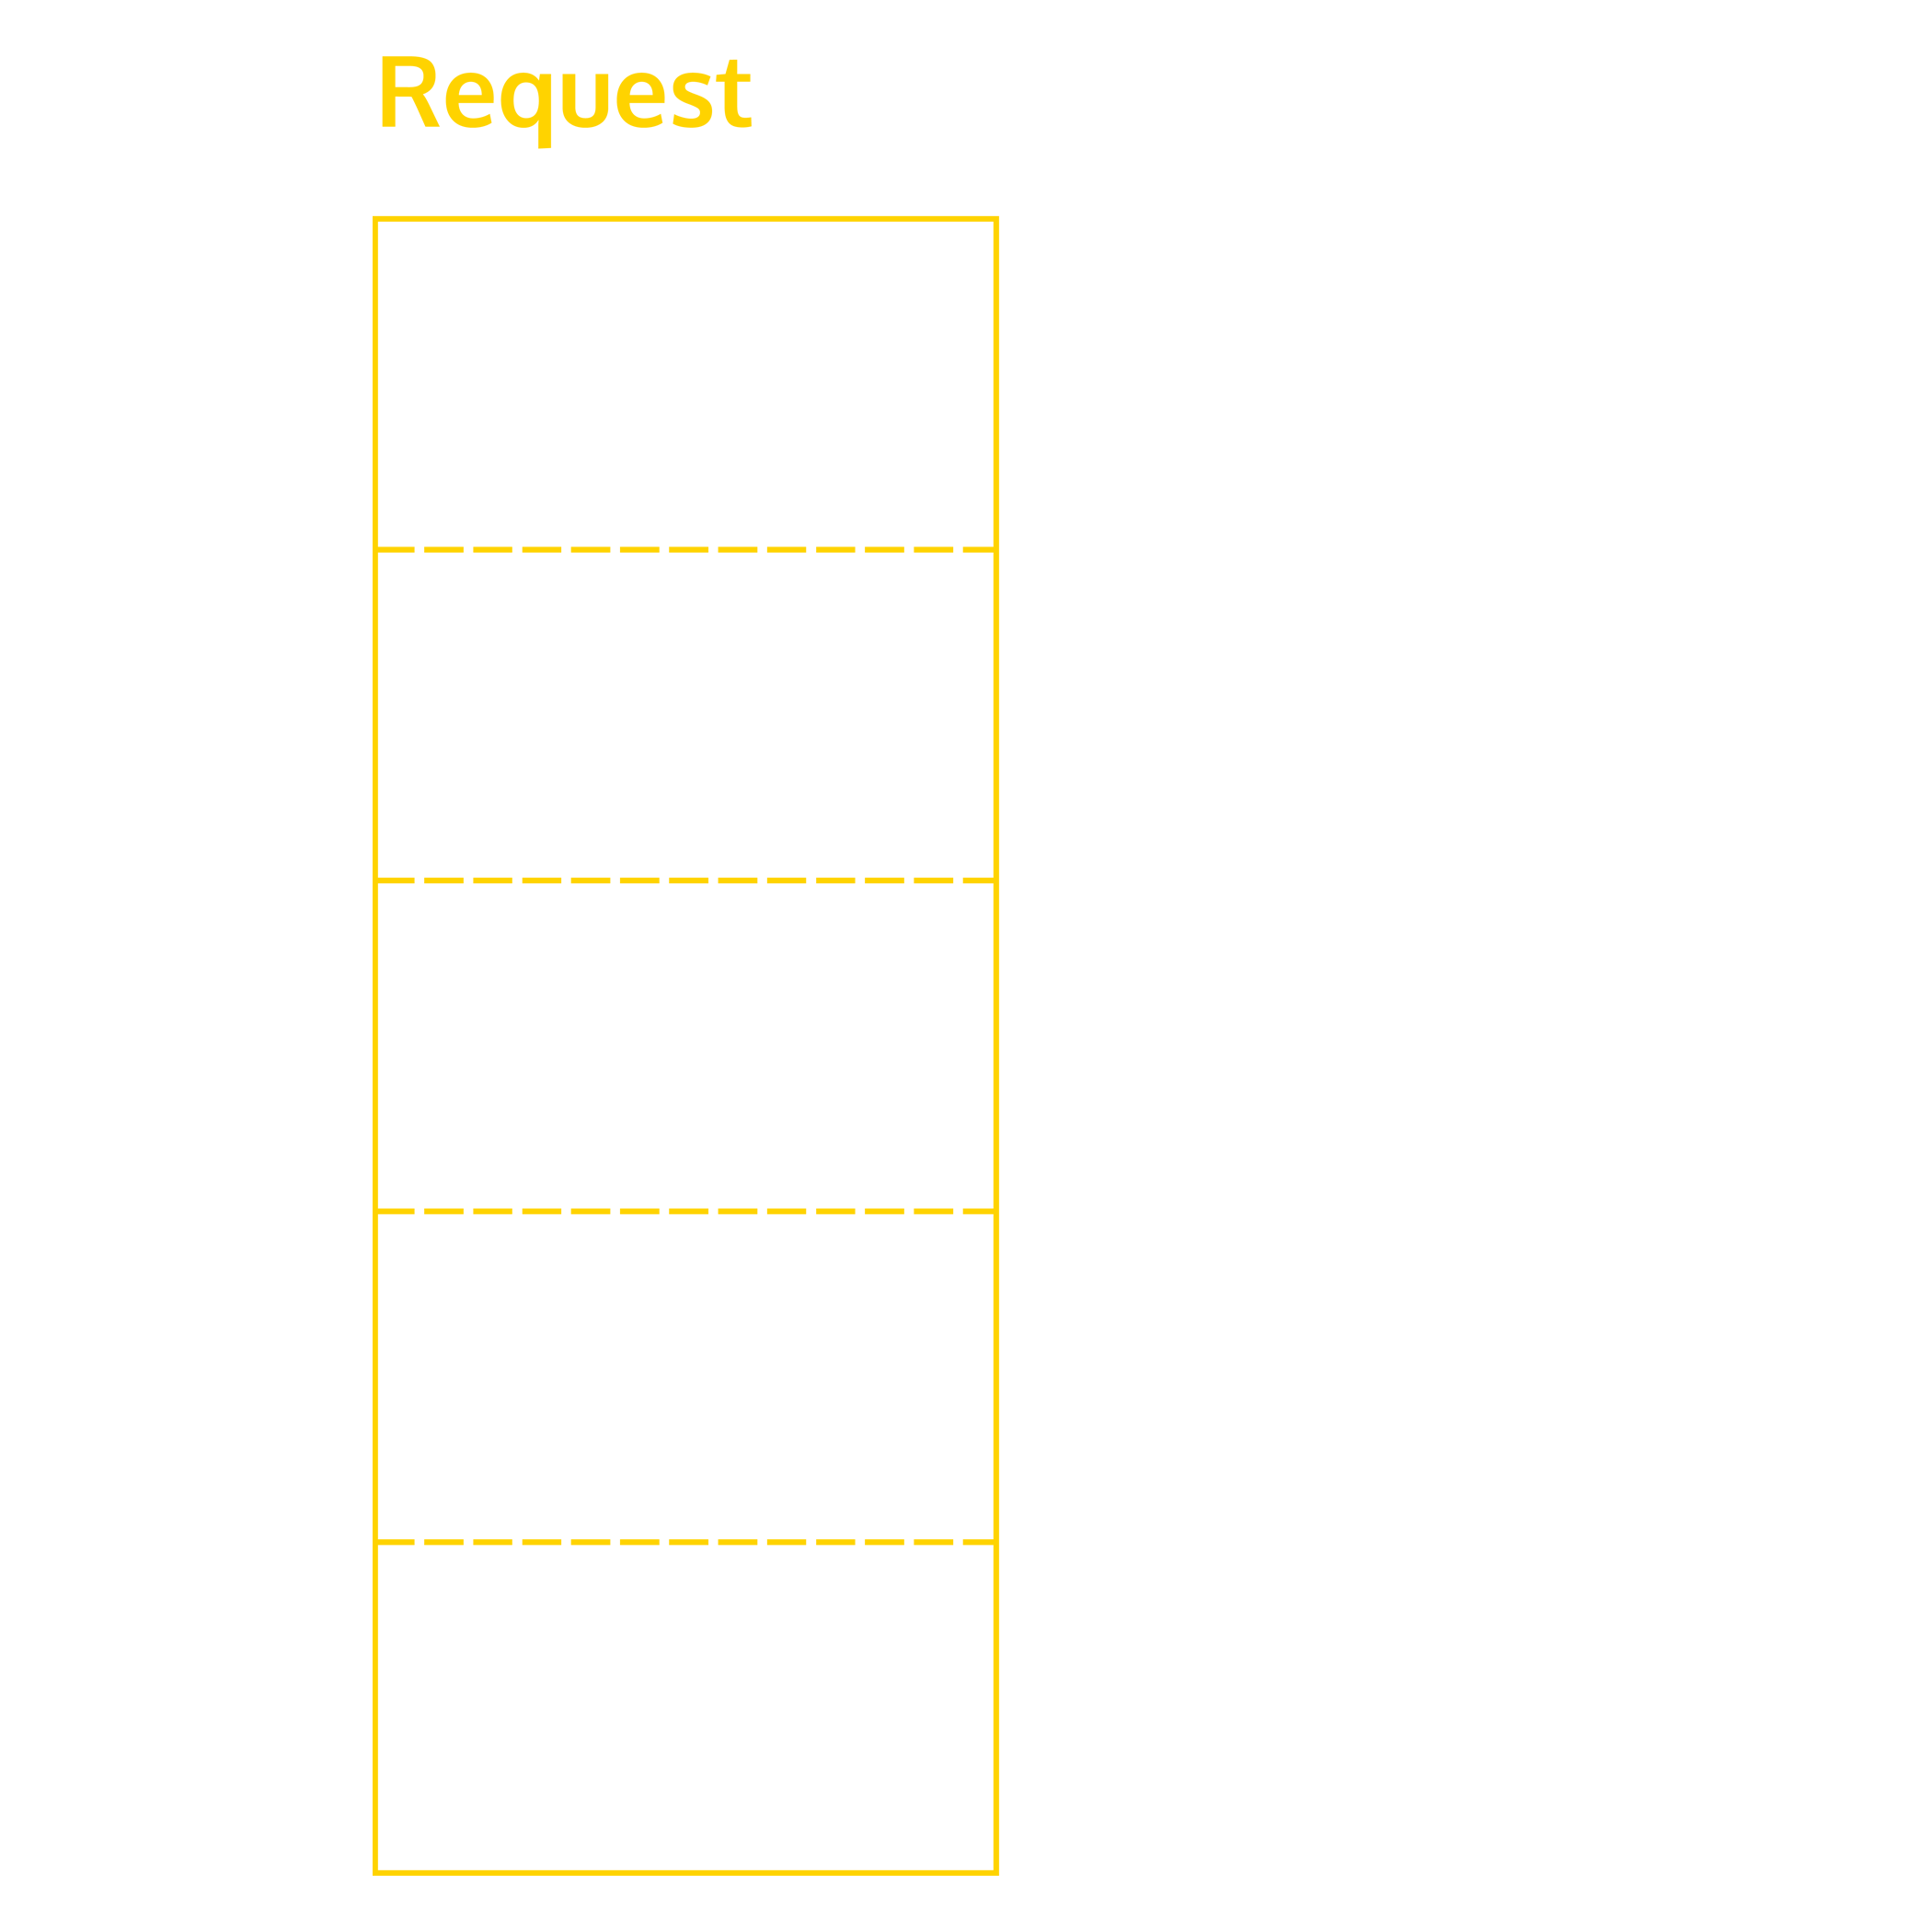 Diagram showing contents of an HTTP request.